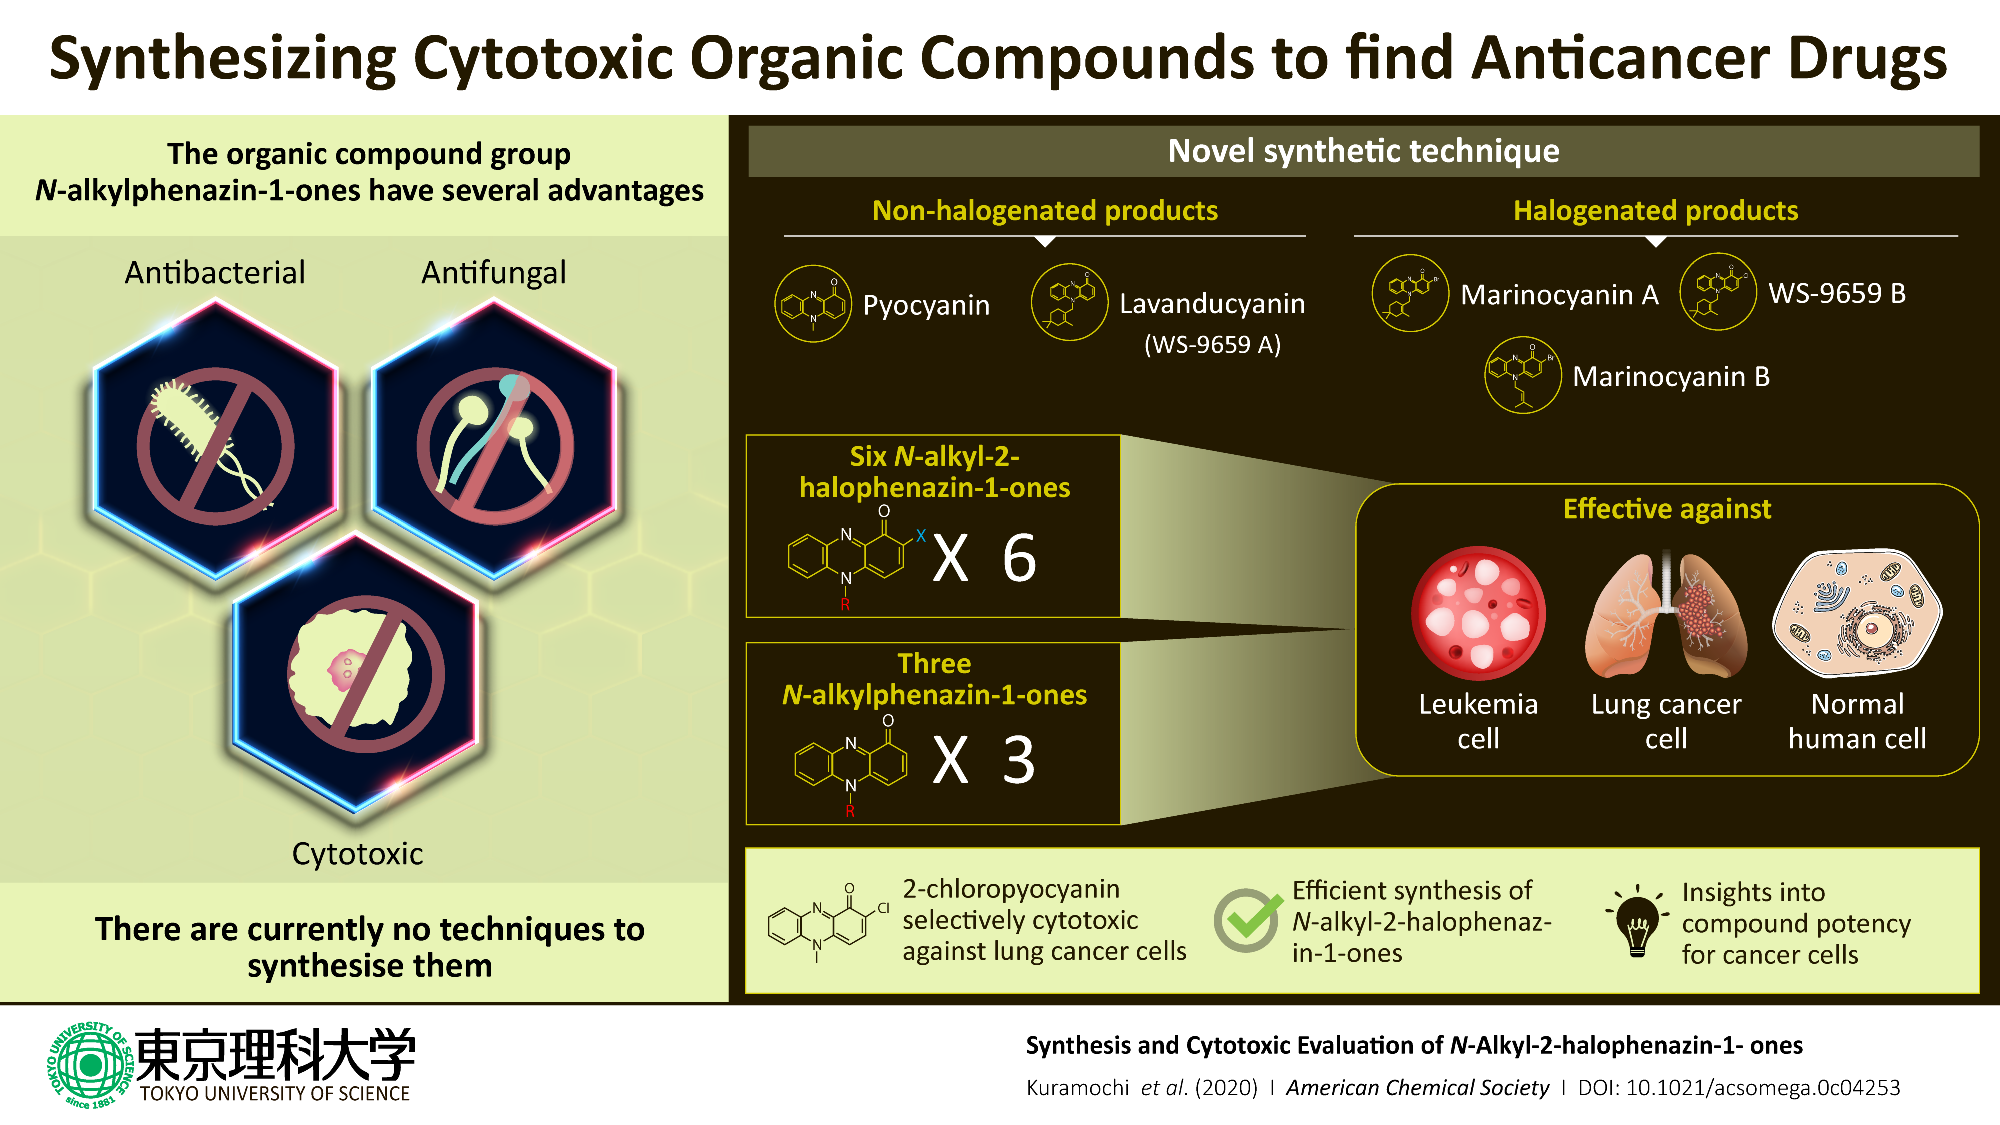 a method of combining natural organic compounds which can create anticancer drugs with minimal side effects